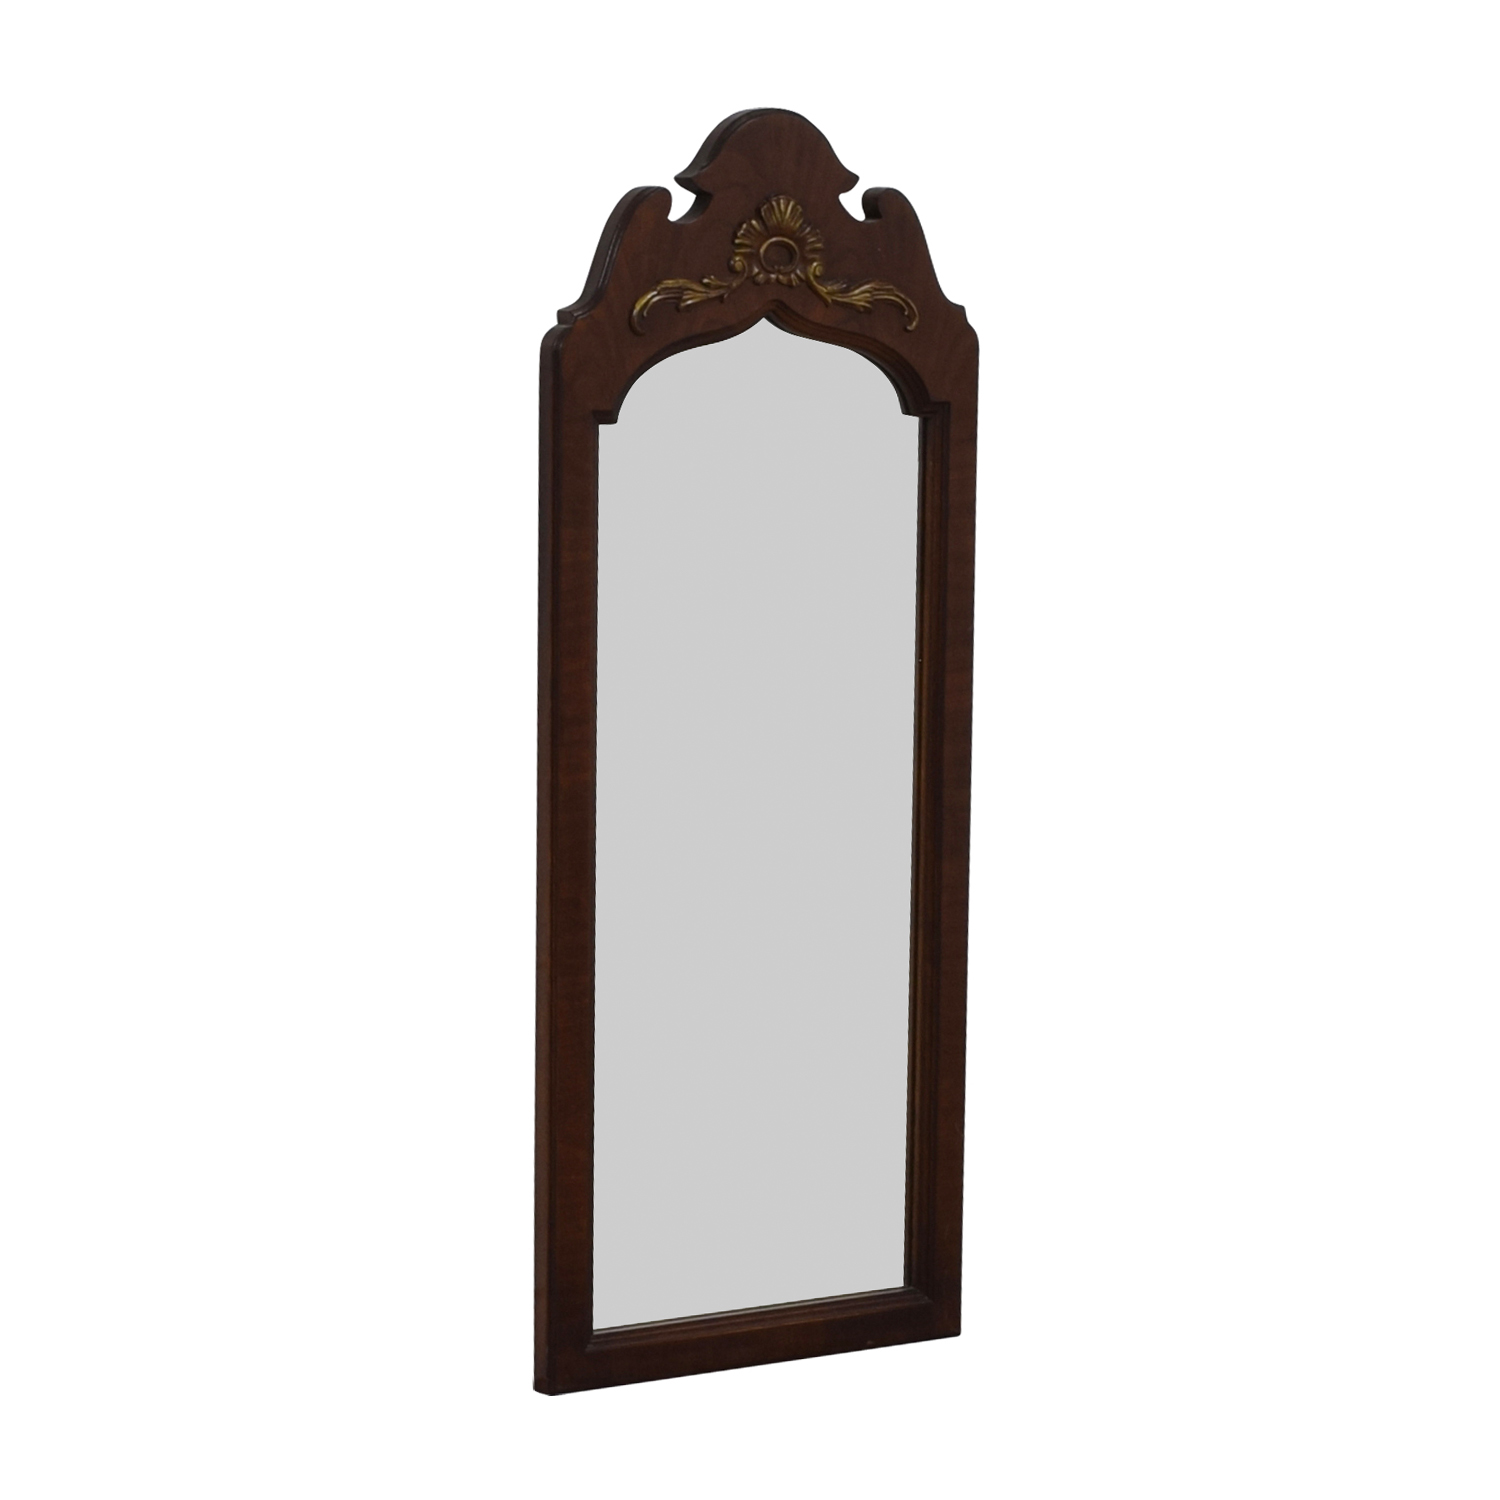 45% OFF - Thomasville Thomasville Cherry Wood Frames Mirror / Decor